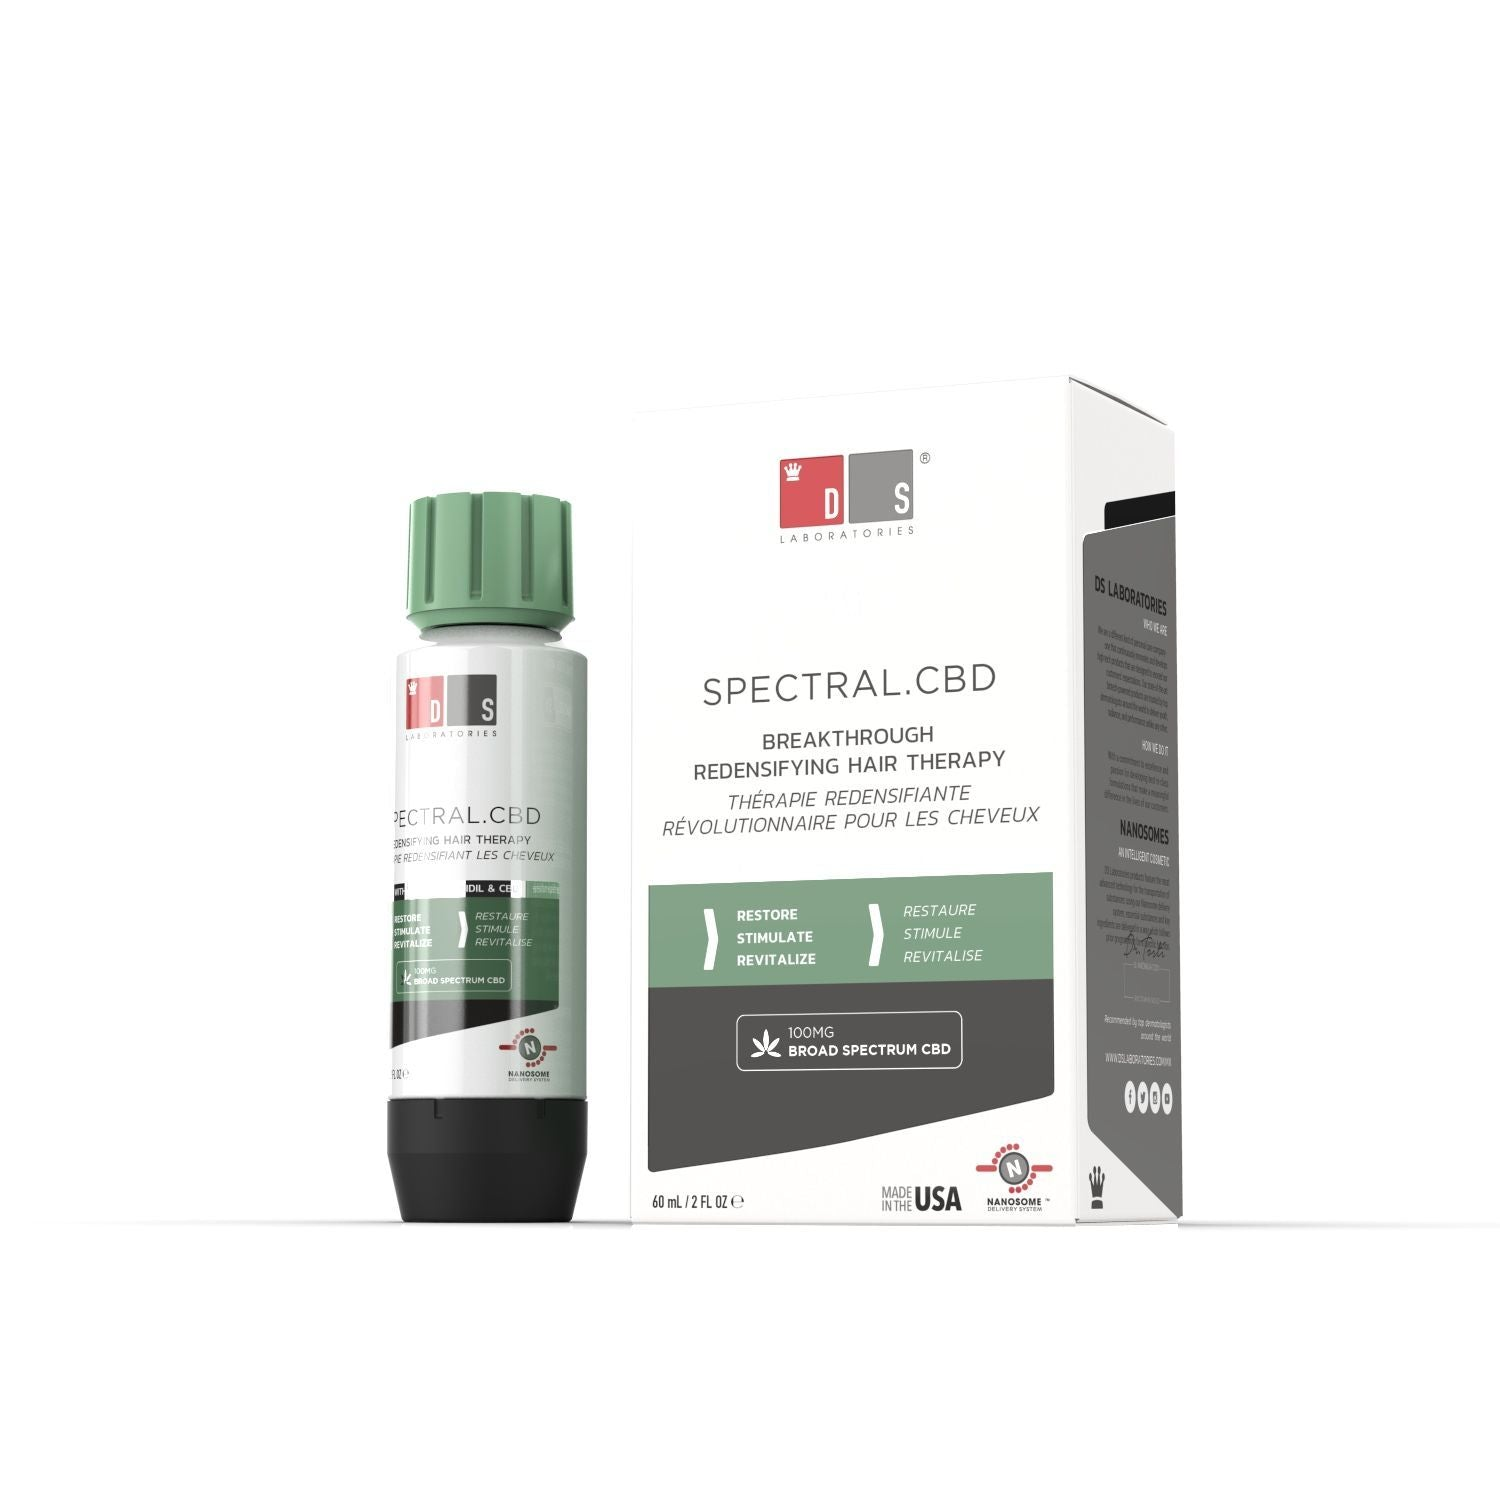 Spectral.CBD | Hair loss treatment with broad spectrum CBD + Nanoxidil 5%